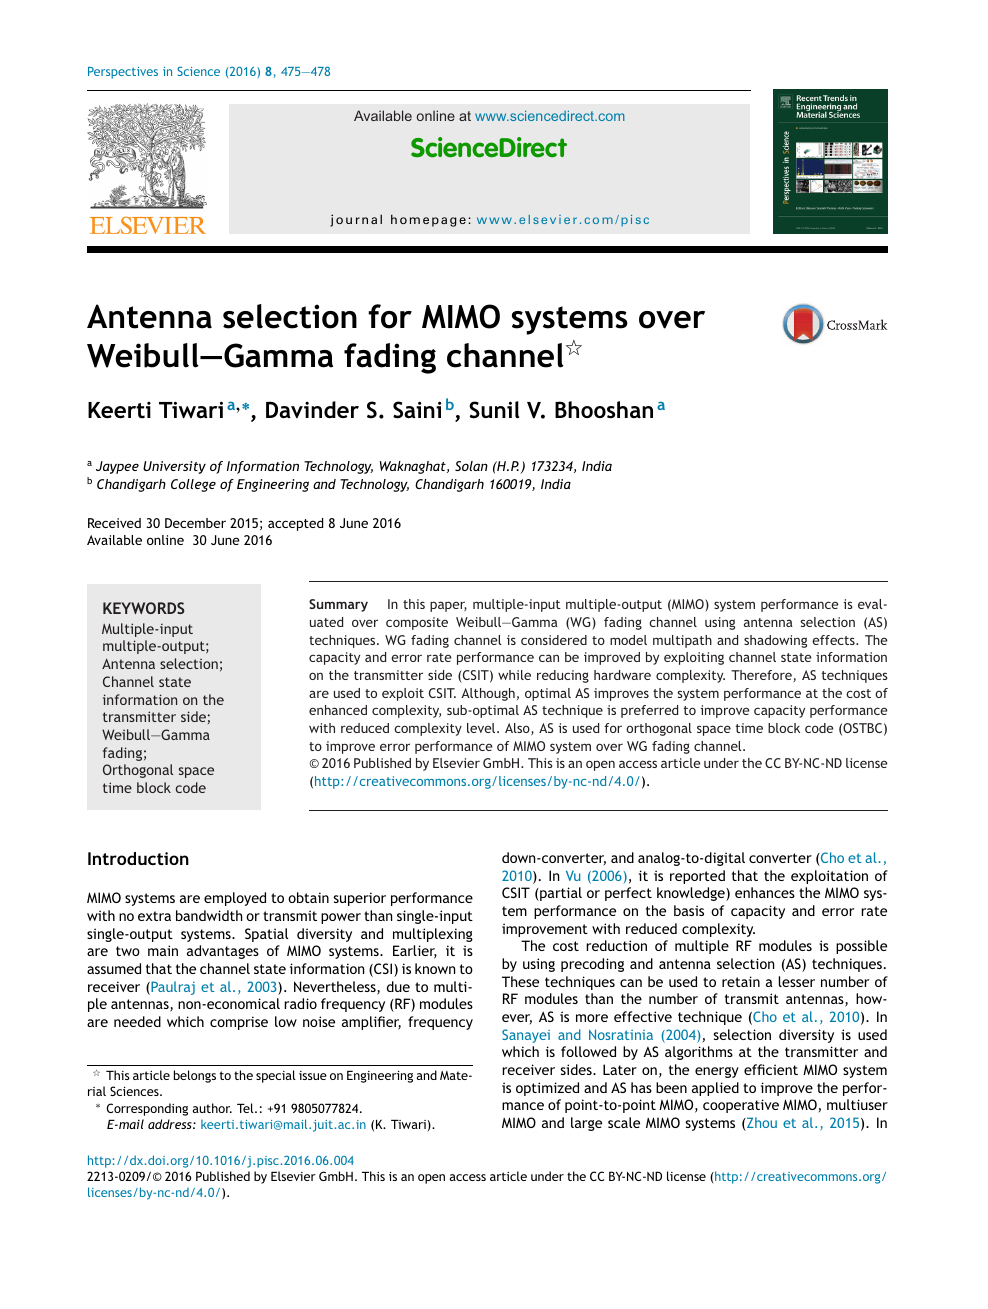 Antenna selection for MIMO systems over Weibull–Gamma fading